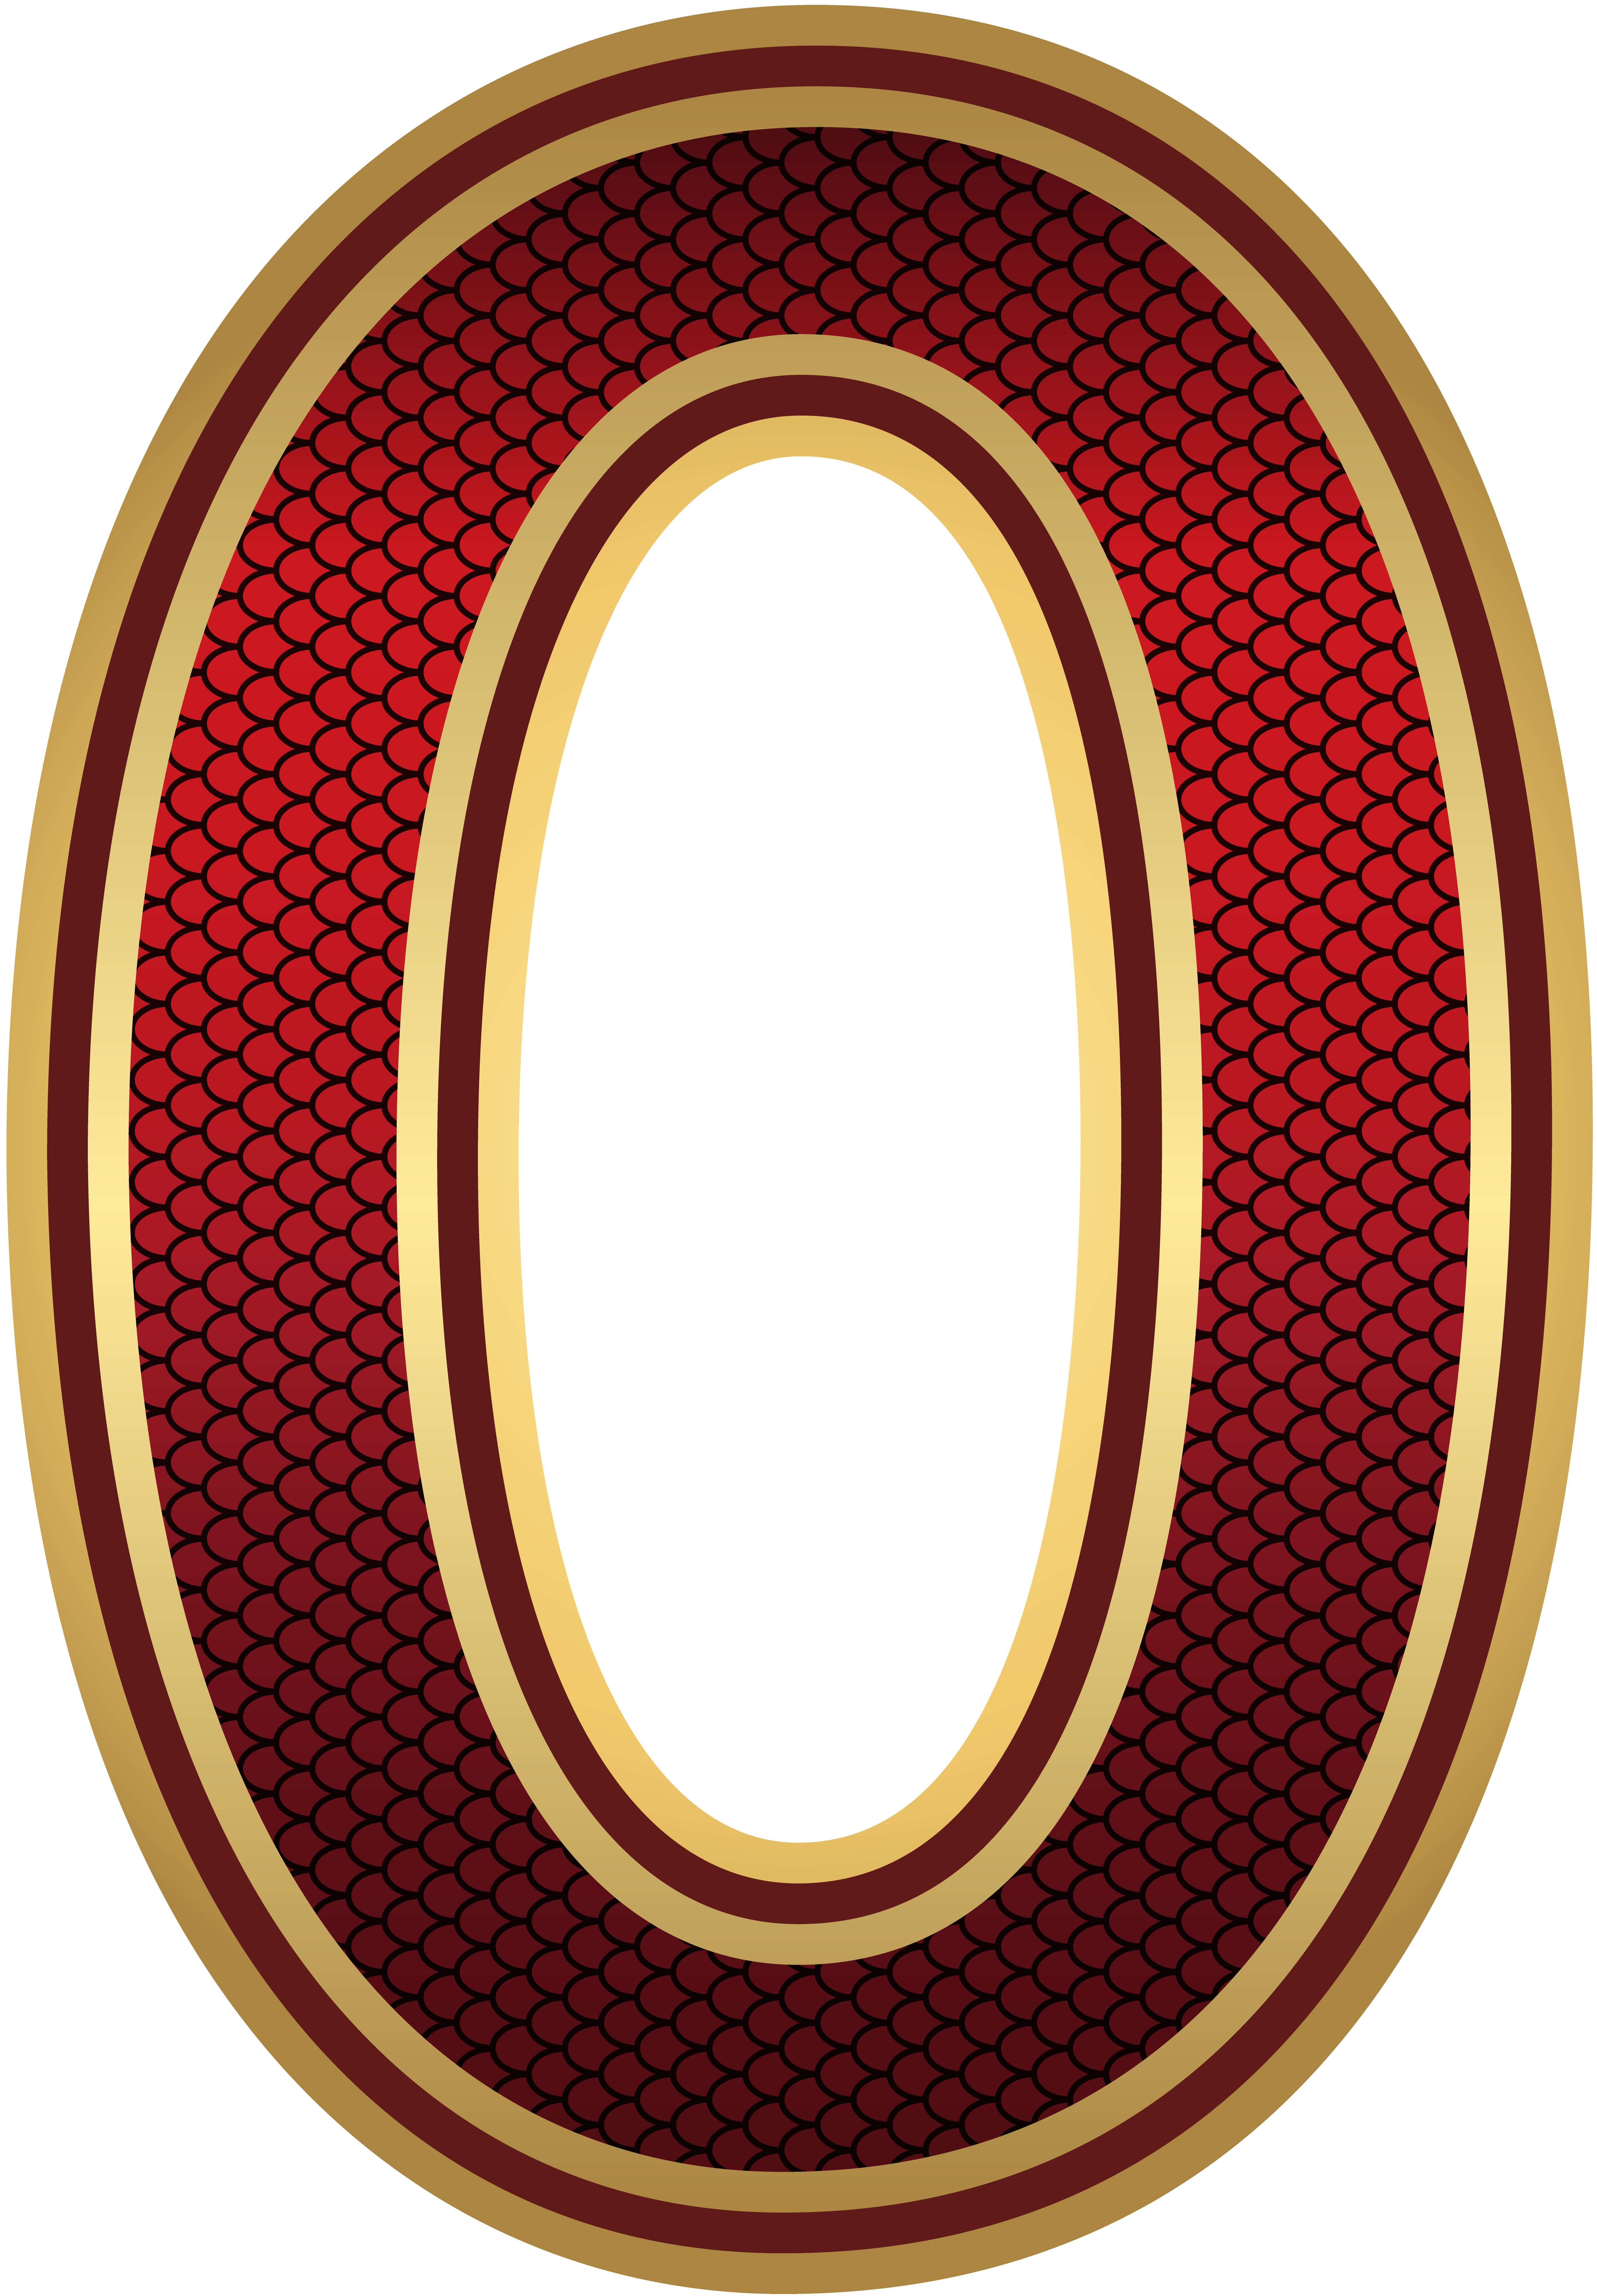 Red and Gold Number Zero PNG Image.